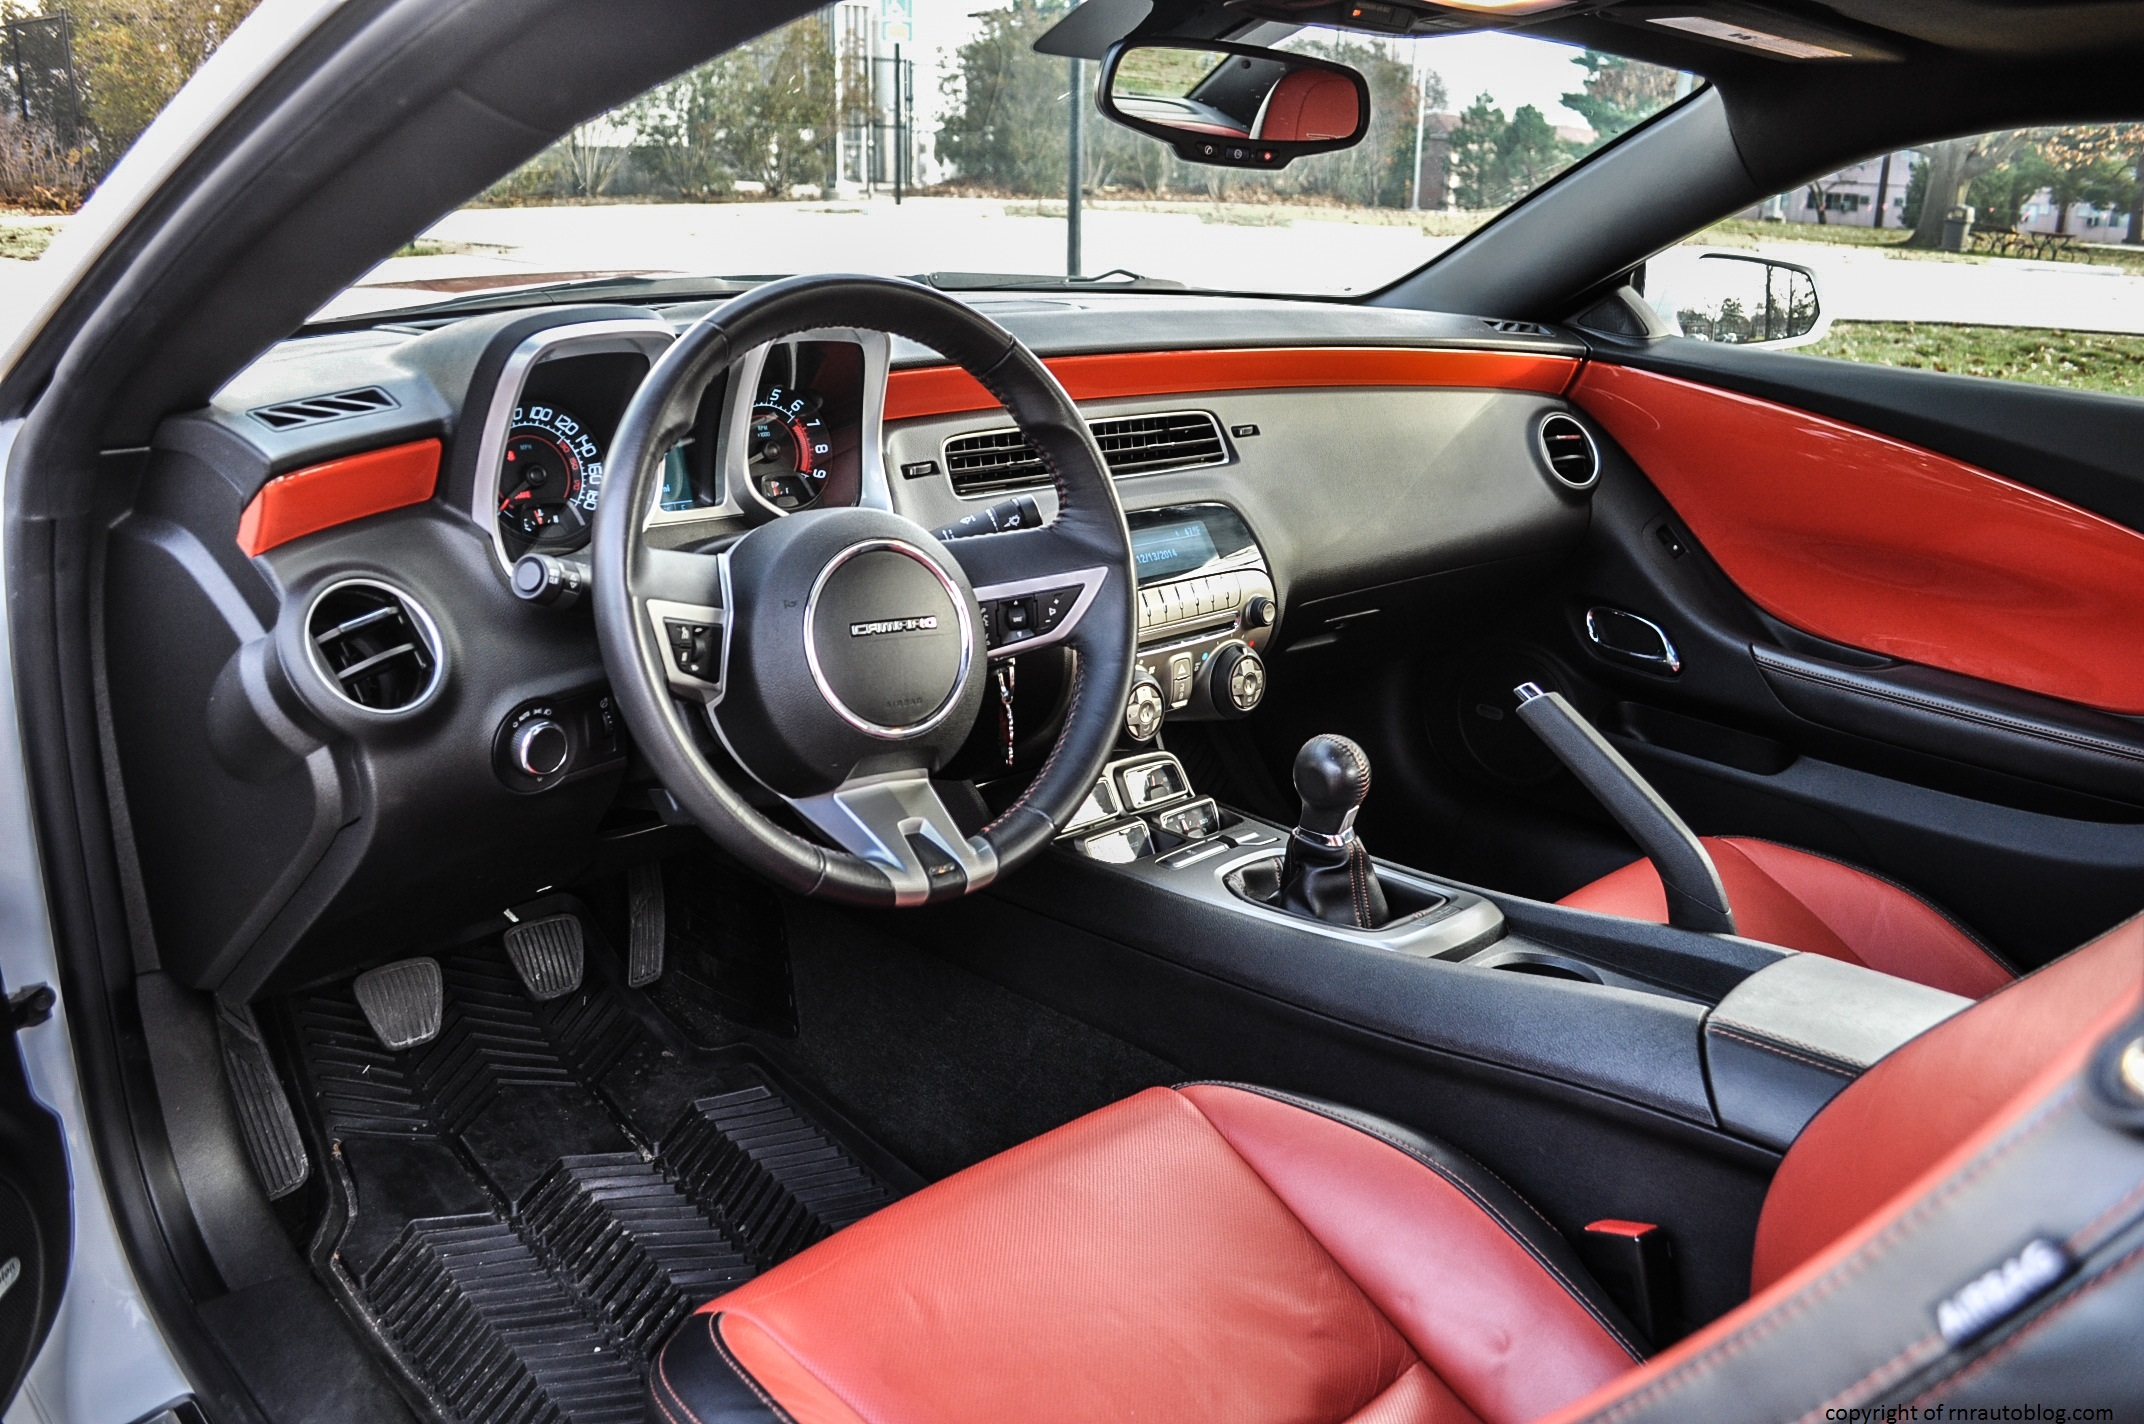 2011 chevrolet camaro ss review rnr automotive blog. Black Bedroom Furniture Sets. Home Design Ideas